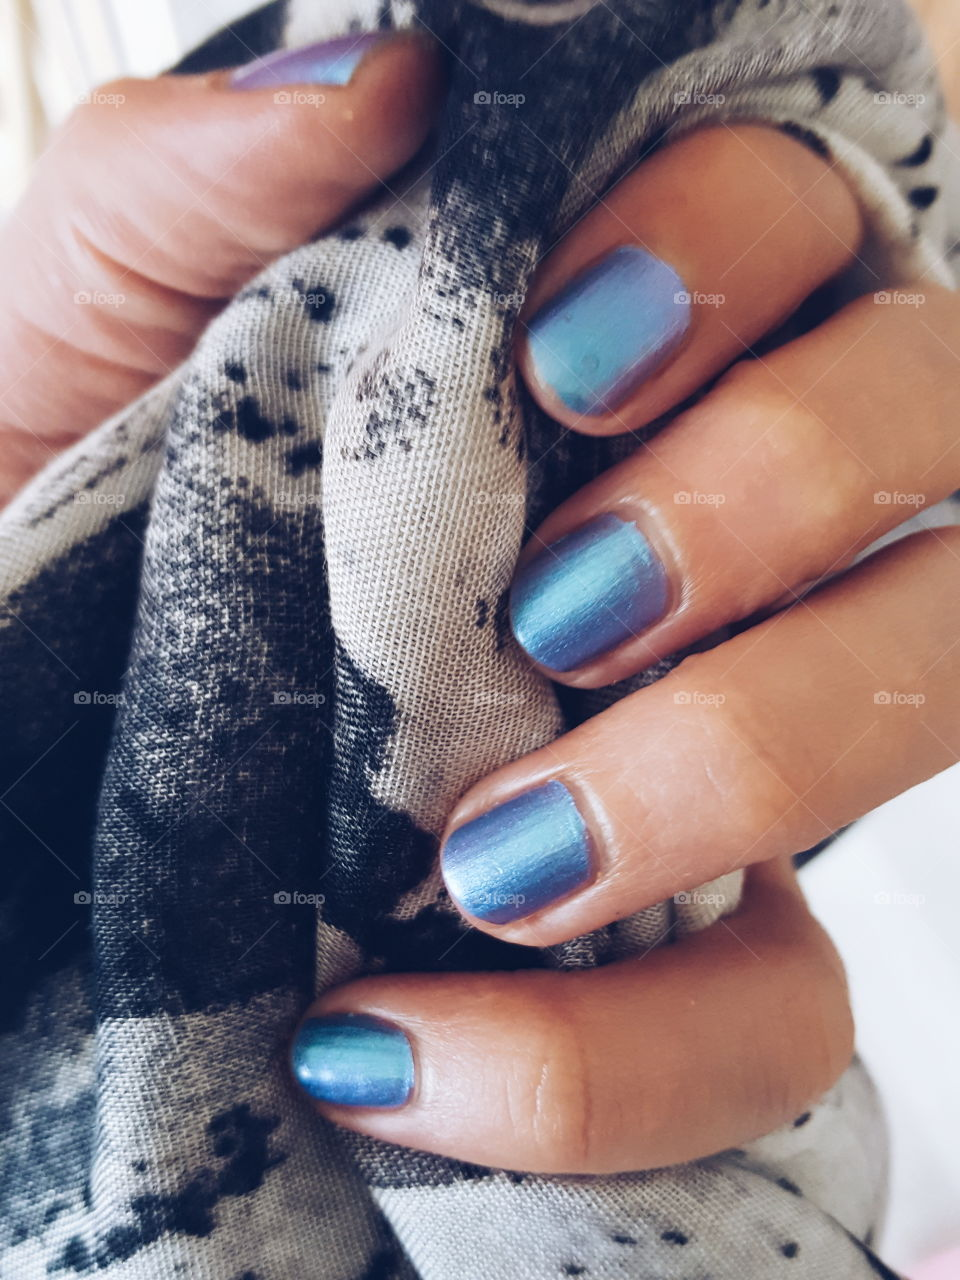 You can See the Gel Polish No. 07 called Blue Lagoon from Rival de Loop Young.